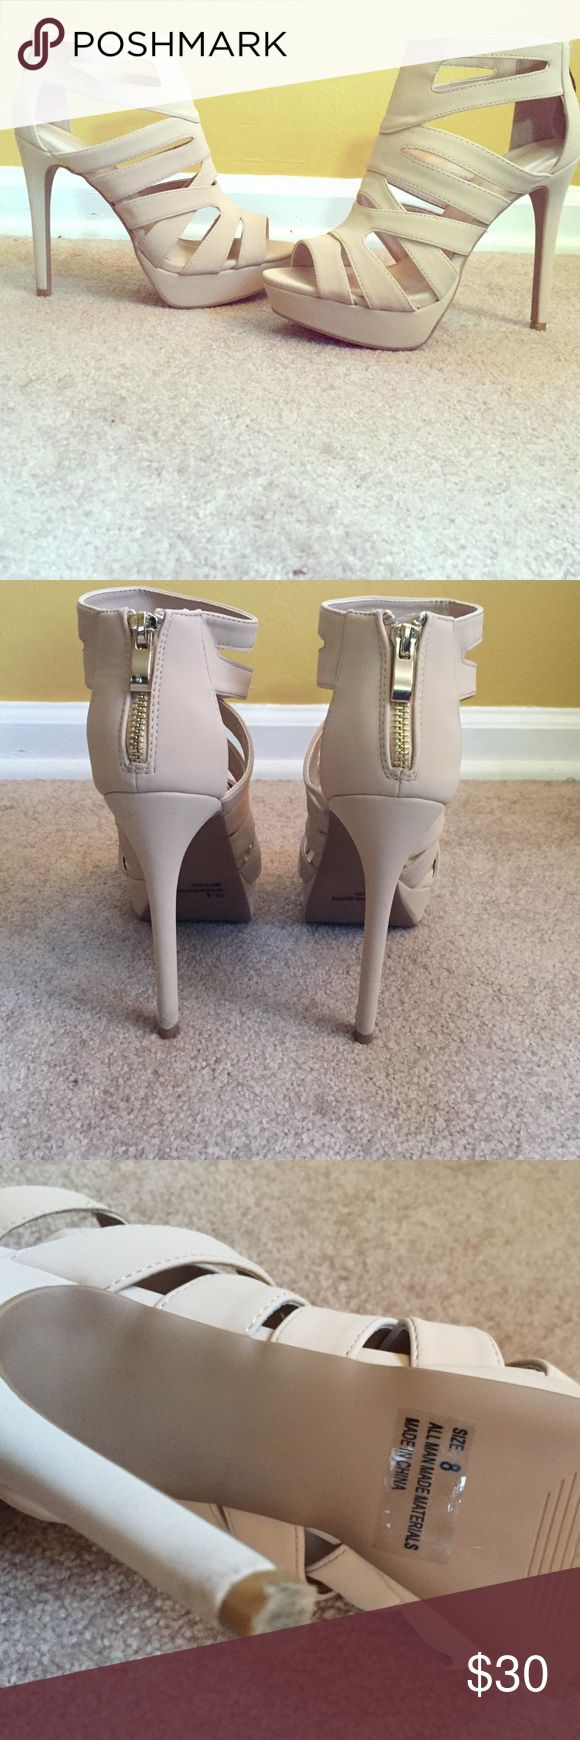 Charlotte Rousse heels Nude in color, only wore them once so they're brand new! Charlotte Russe Shoes Heels